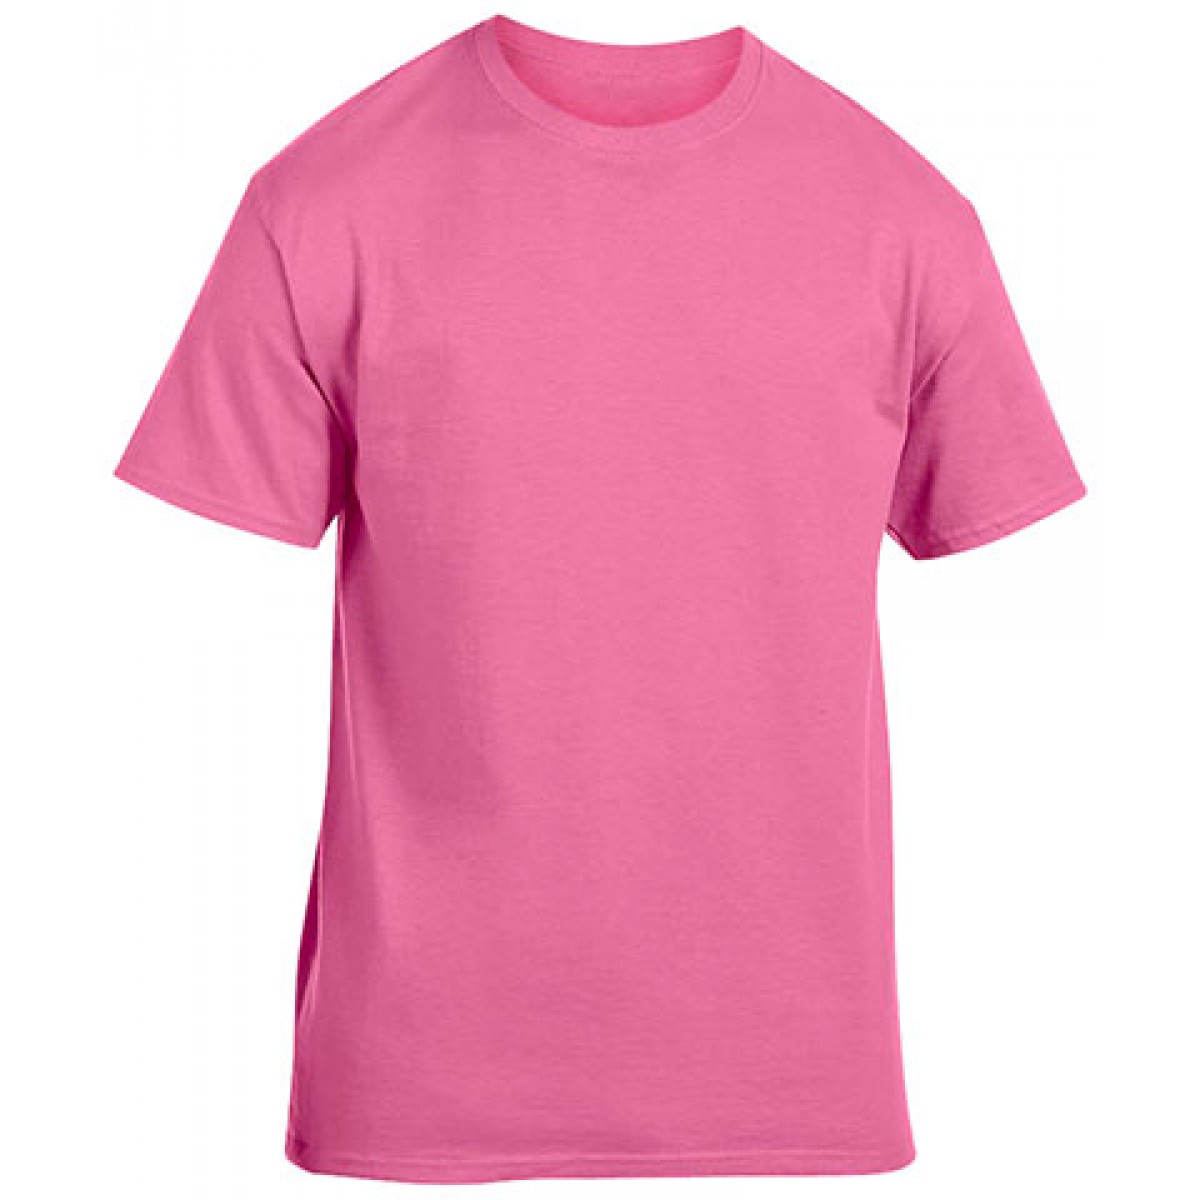 Cotton Short Sleeve T-Shirt-Safety Pink-YM